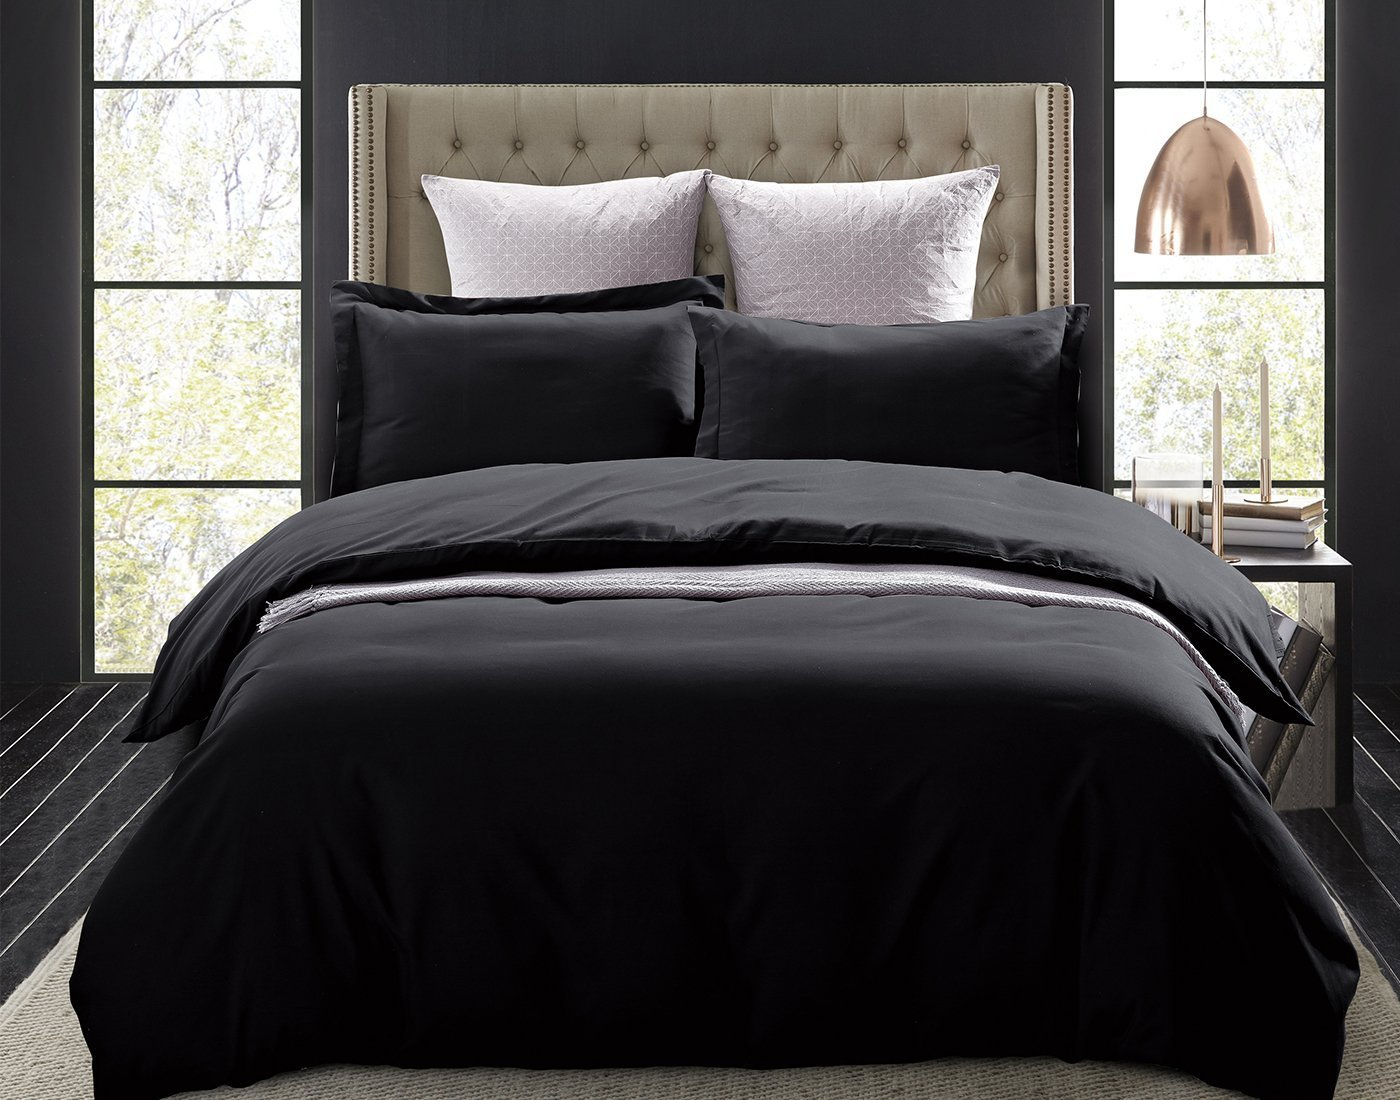 Full//Queen Word of Dream Brushed Microfiber 3 PC Solid Duvet Cover Set Navy COMIN18JU003712